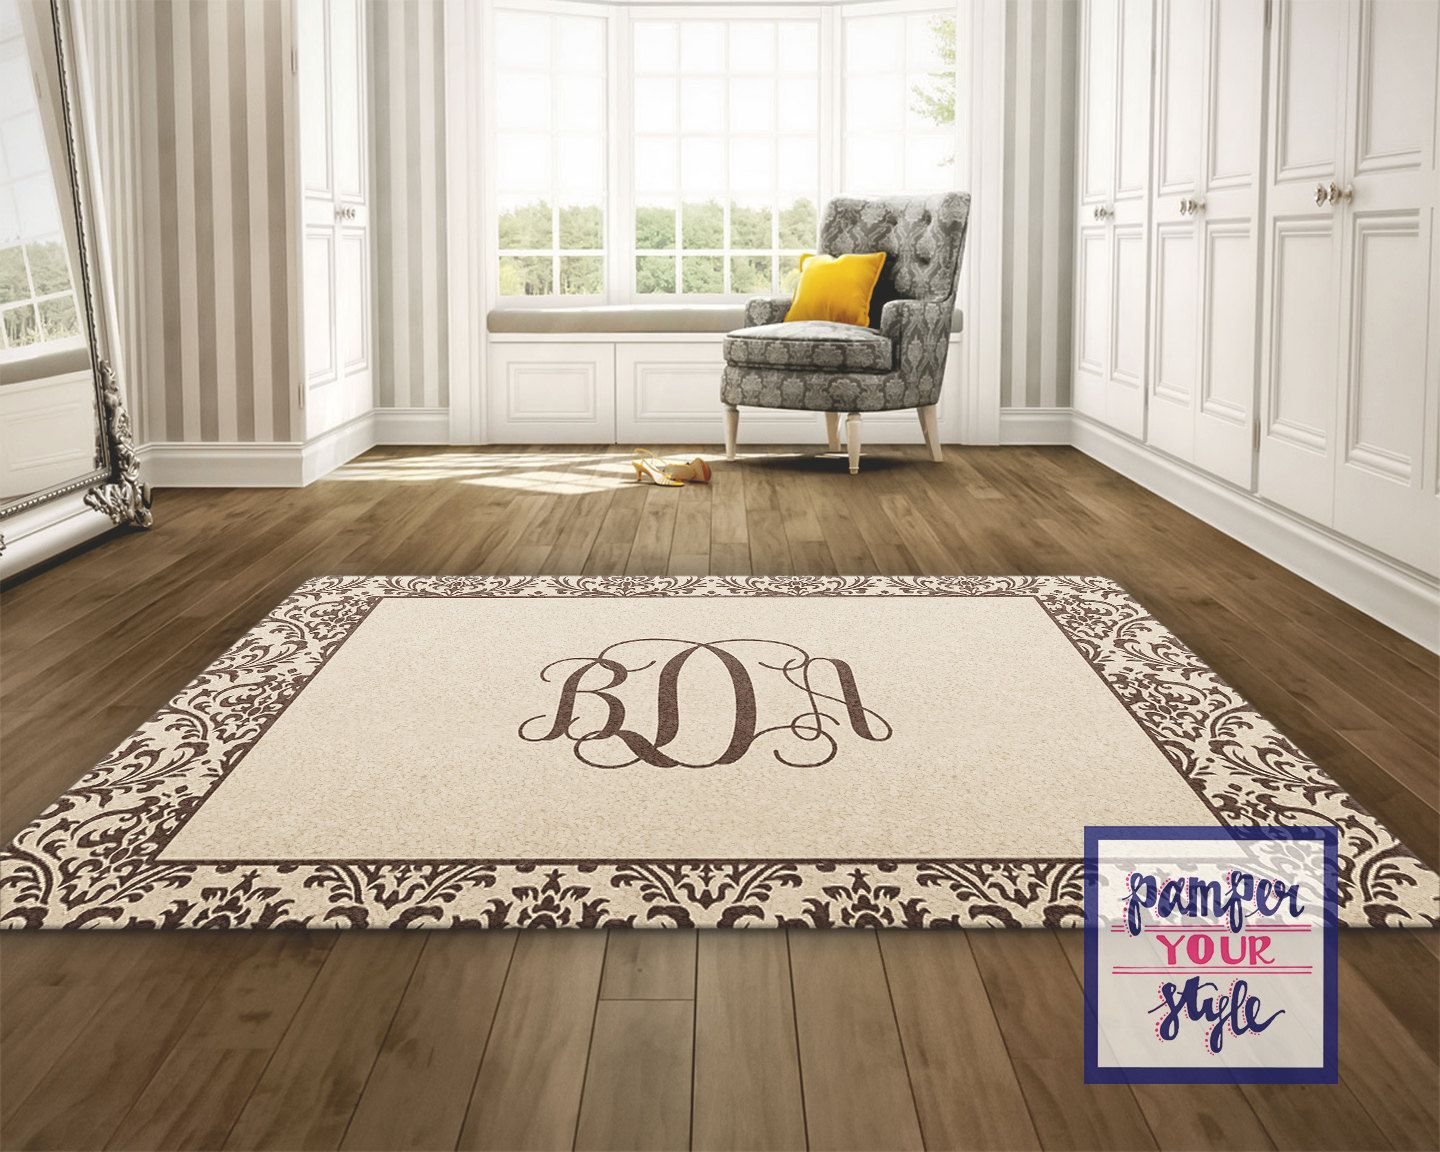 Tan And Brown Custom Area Rug Personalized Living Room Rug Etsy Custom Area Rugs Rugs In Living Room Area Rugs #tan #carpet #living #room